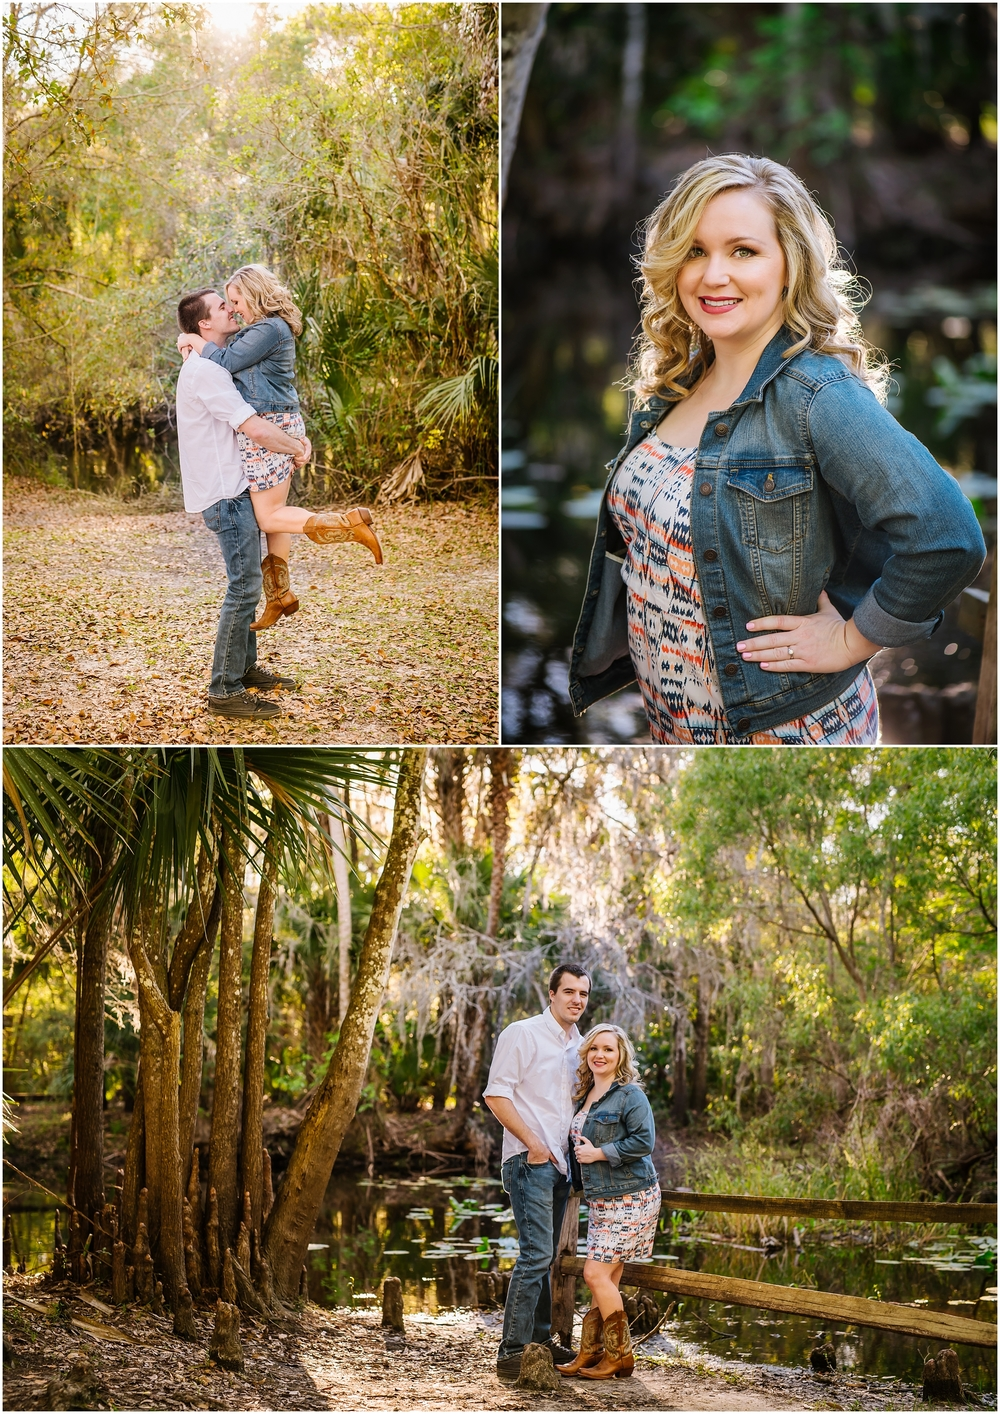 tampa-engagement-photography-ashlee-hamon_0002.jpg